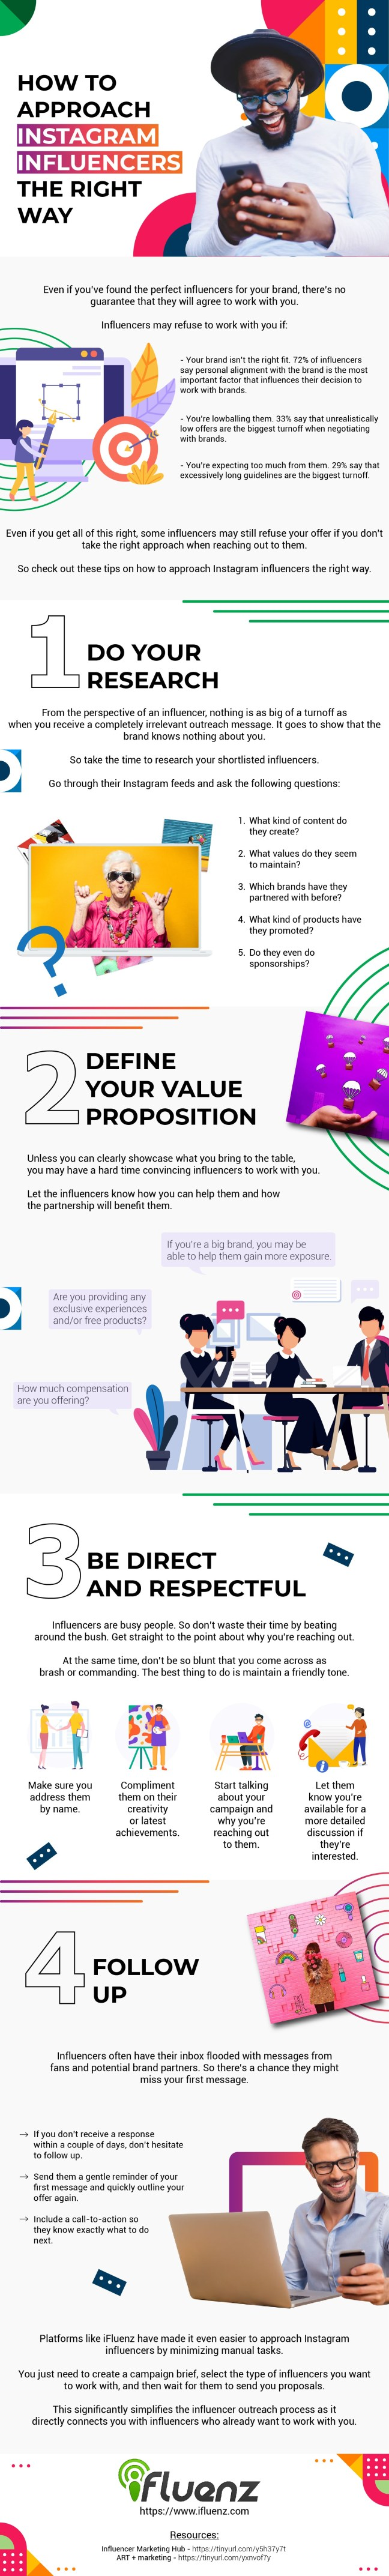 how to approach instagram influencers the right away infographic